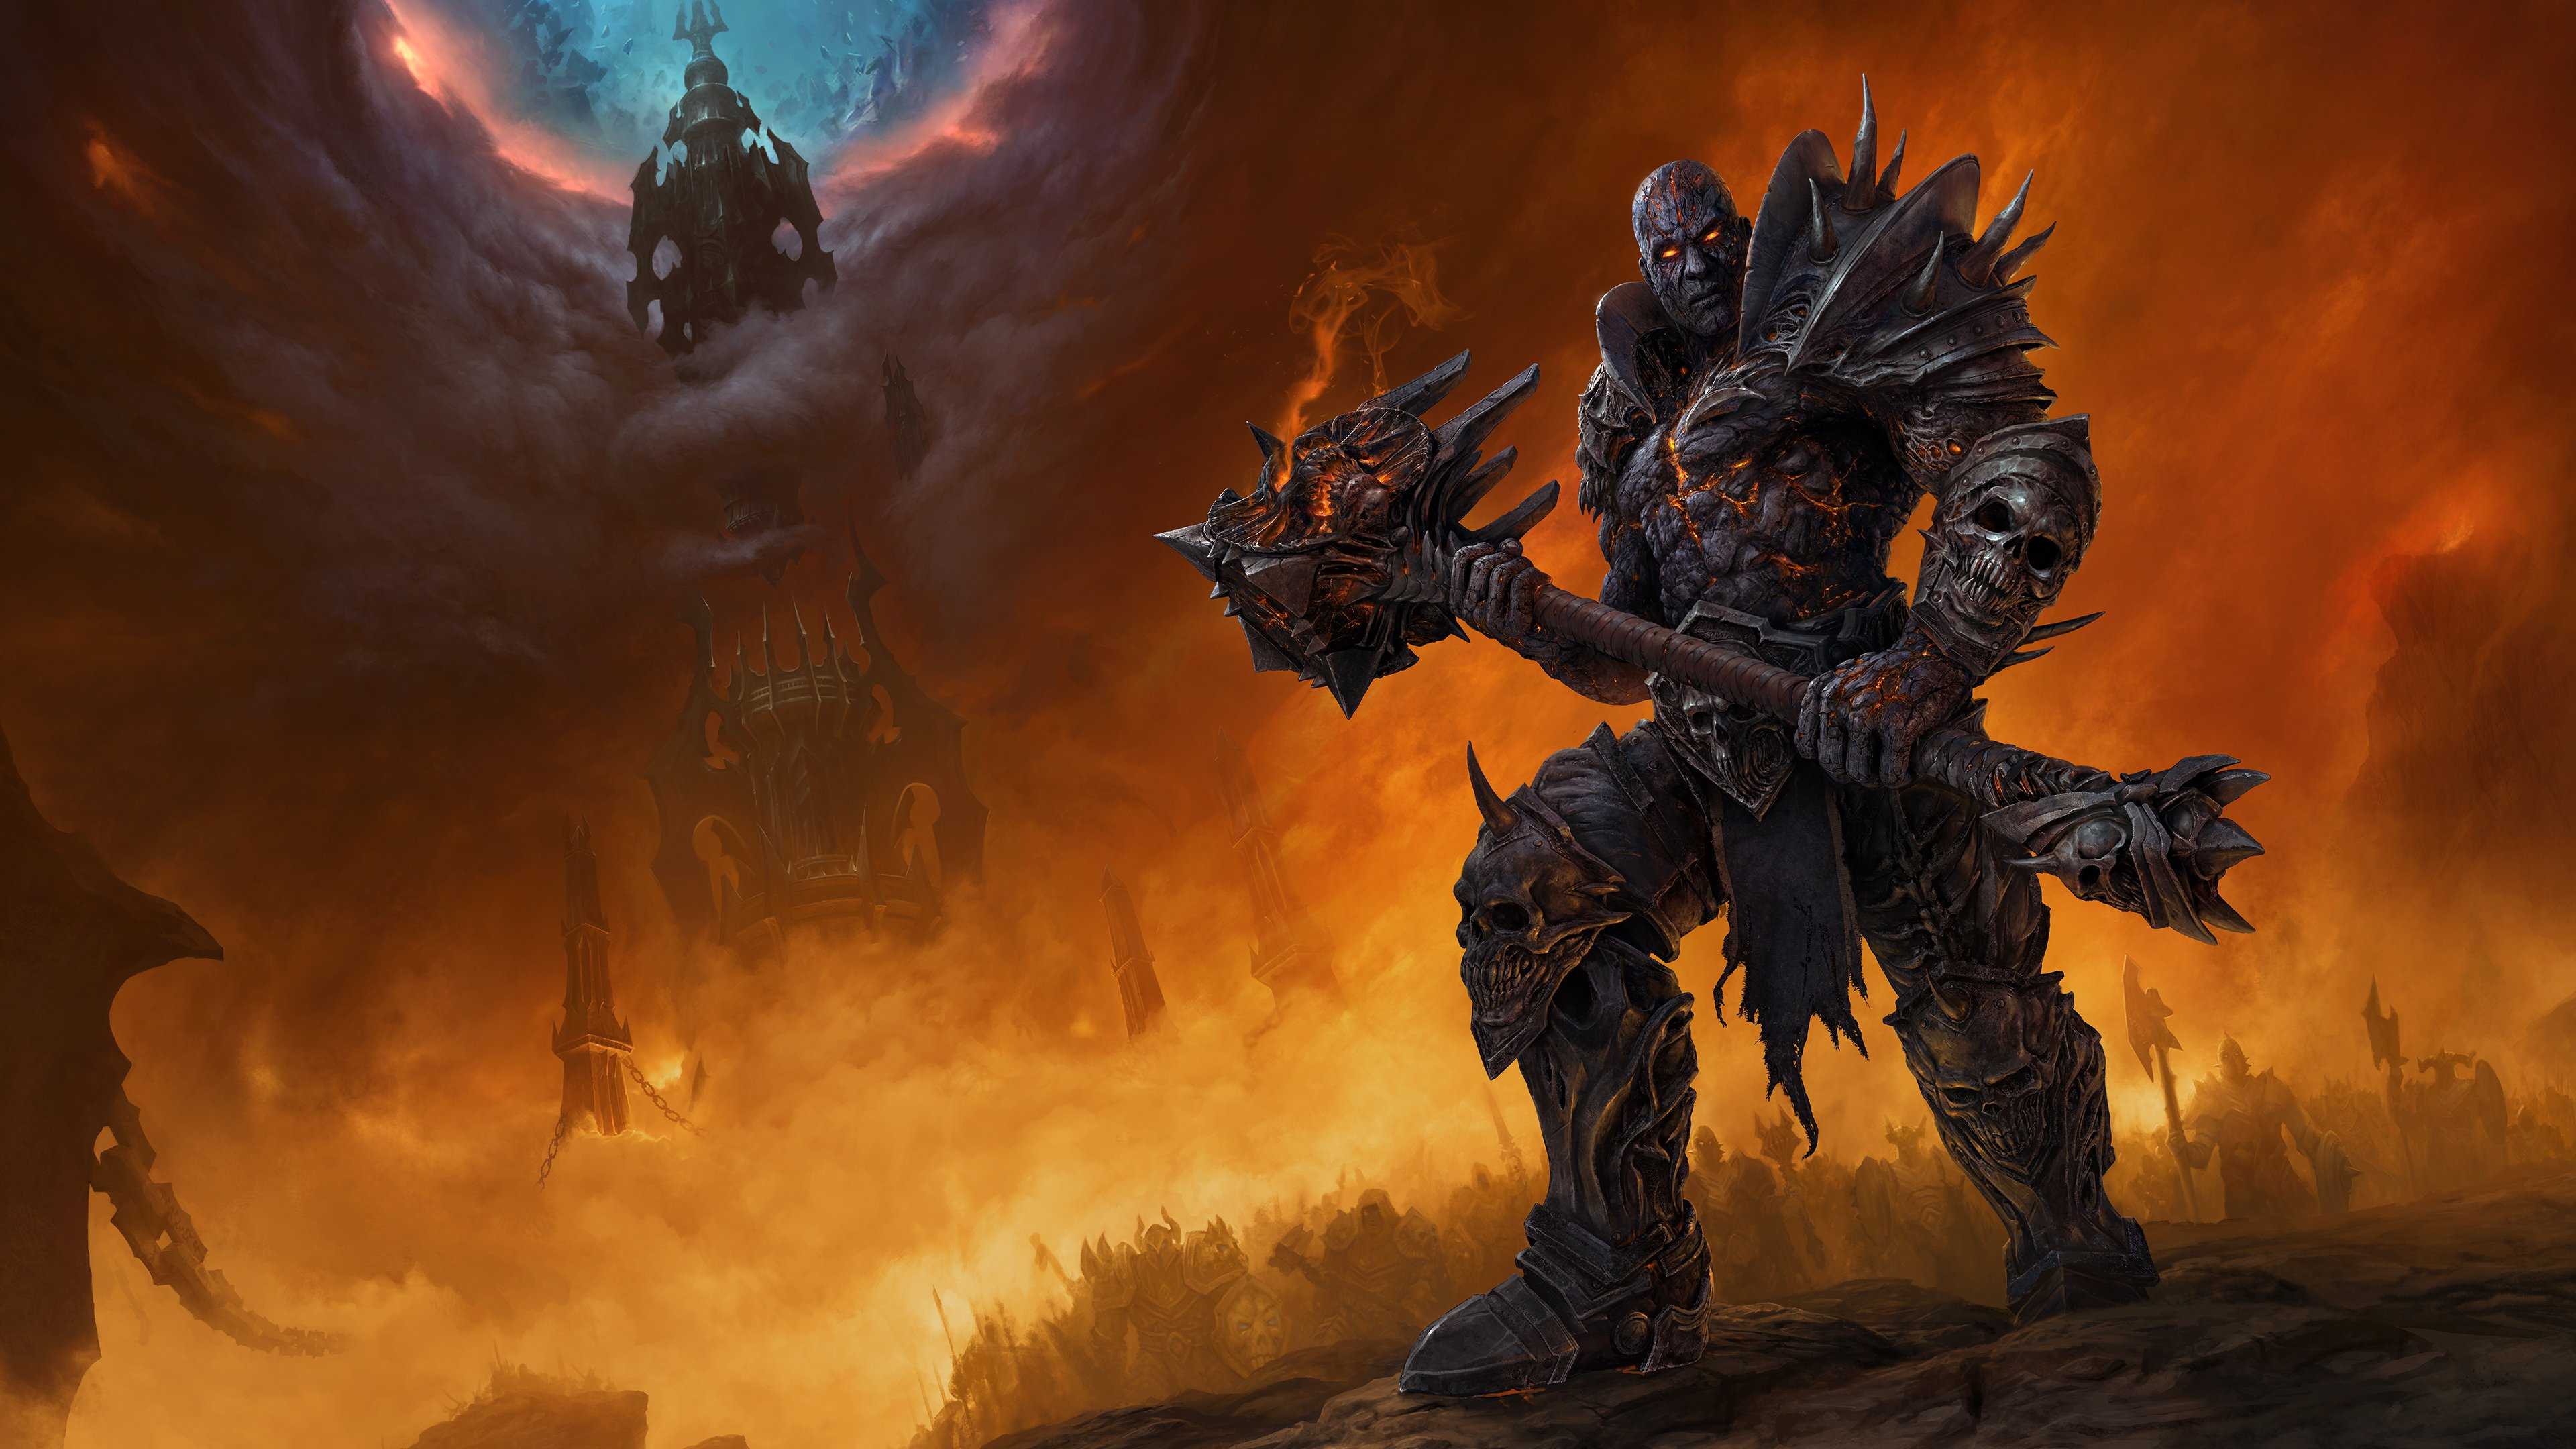 Here's an expanded look at World of Warcraft: Shadowlands' upcoming beta